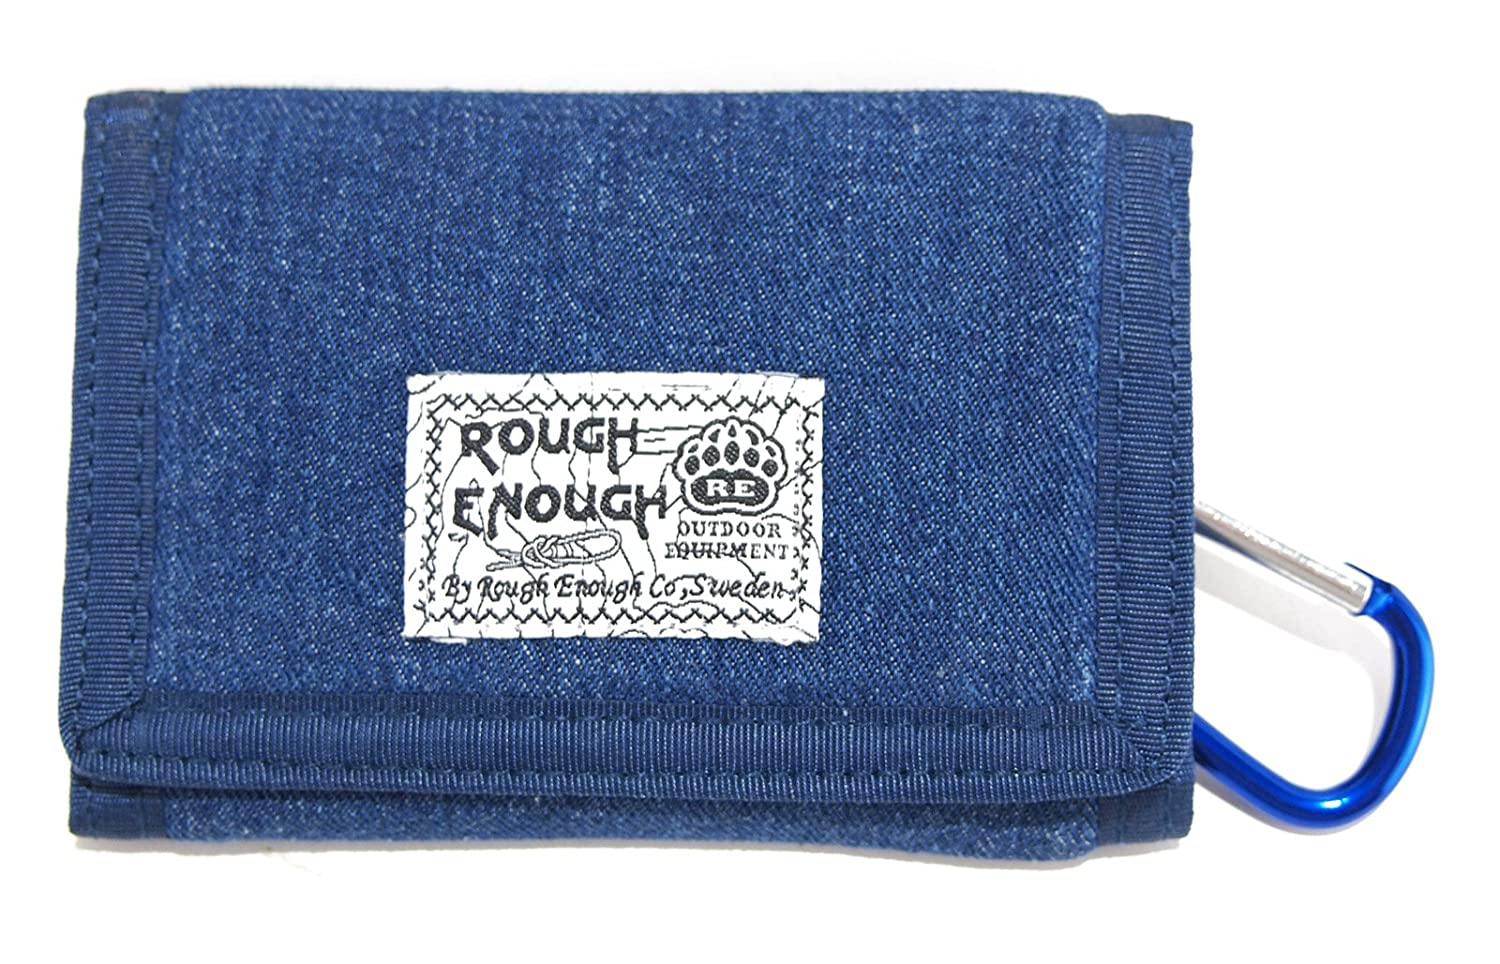 Rough Enough Denim Canvas Vintage Blue Classic Stylish Wallet Purse For Coins Holder Organizer Case With Zippered Pockets Trifold Coin Pocket ROUGH ENOUGH INC. UK-RE8301